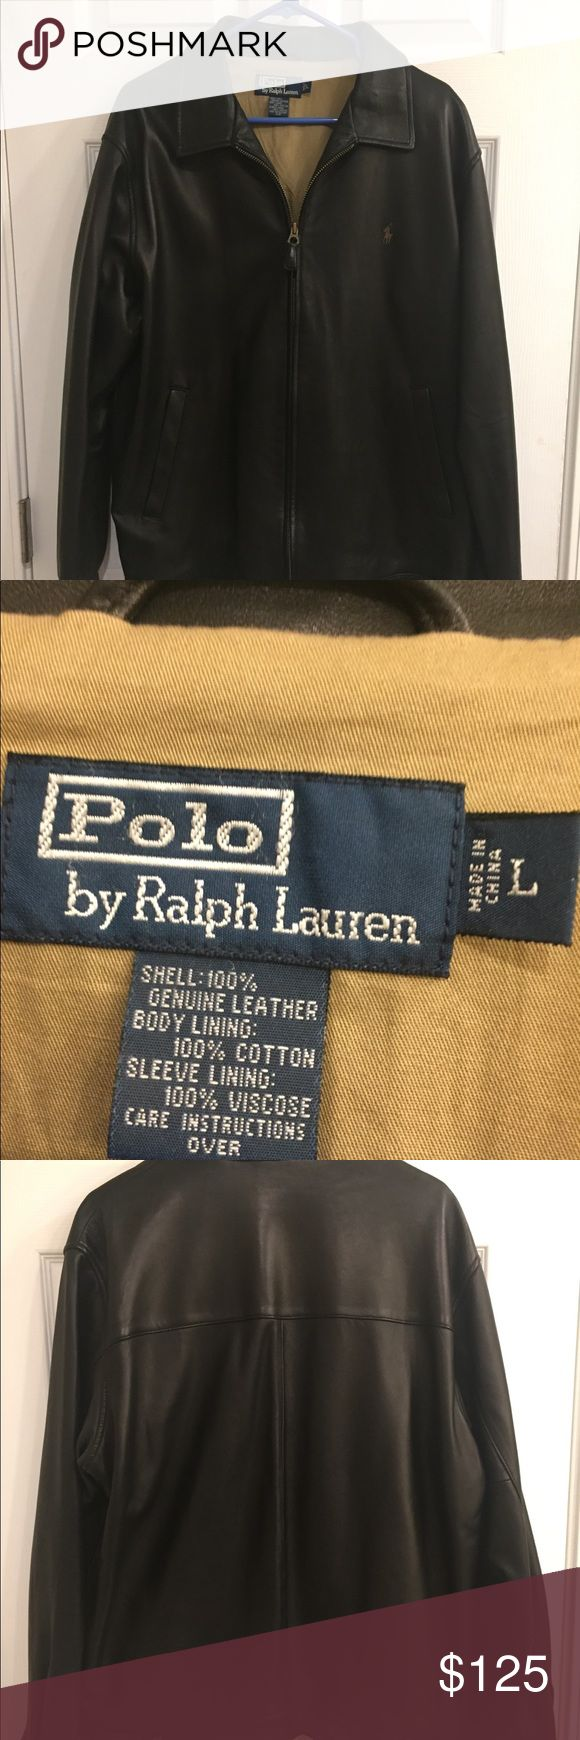 Polo Leather Jacket Black Leather Polo Jacket, mint condition, wore only a couple times Polo by Ralph Lauren Jackets & Coats Bomber & Varsity